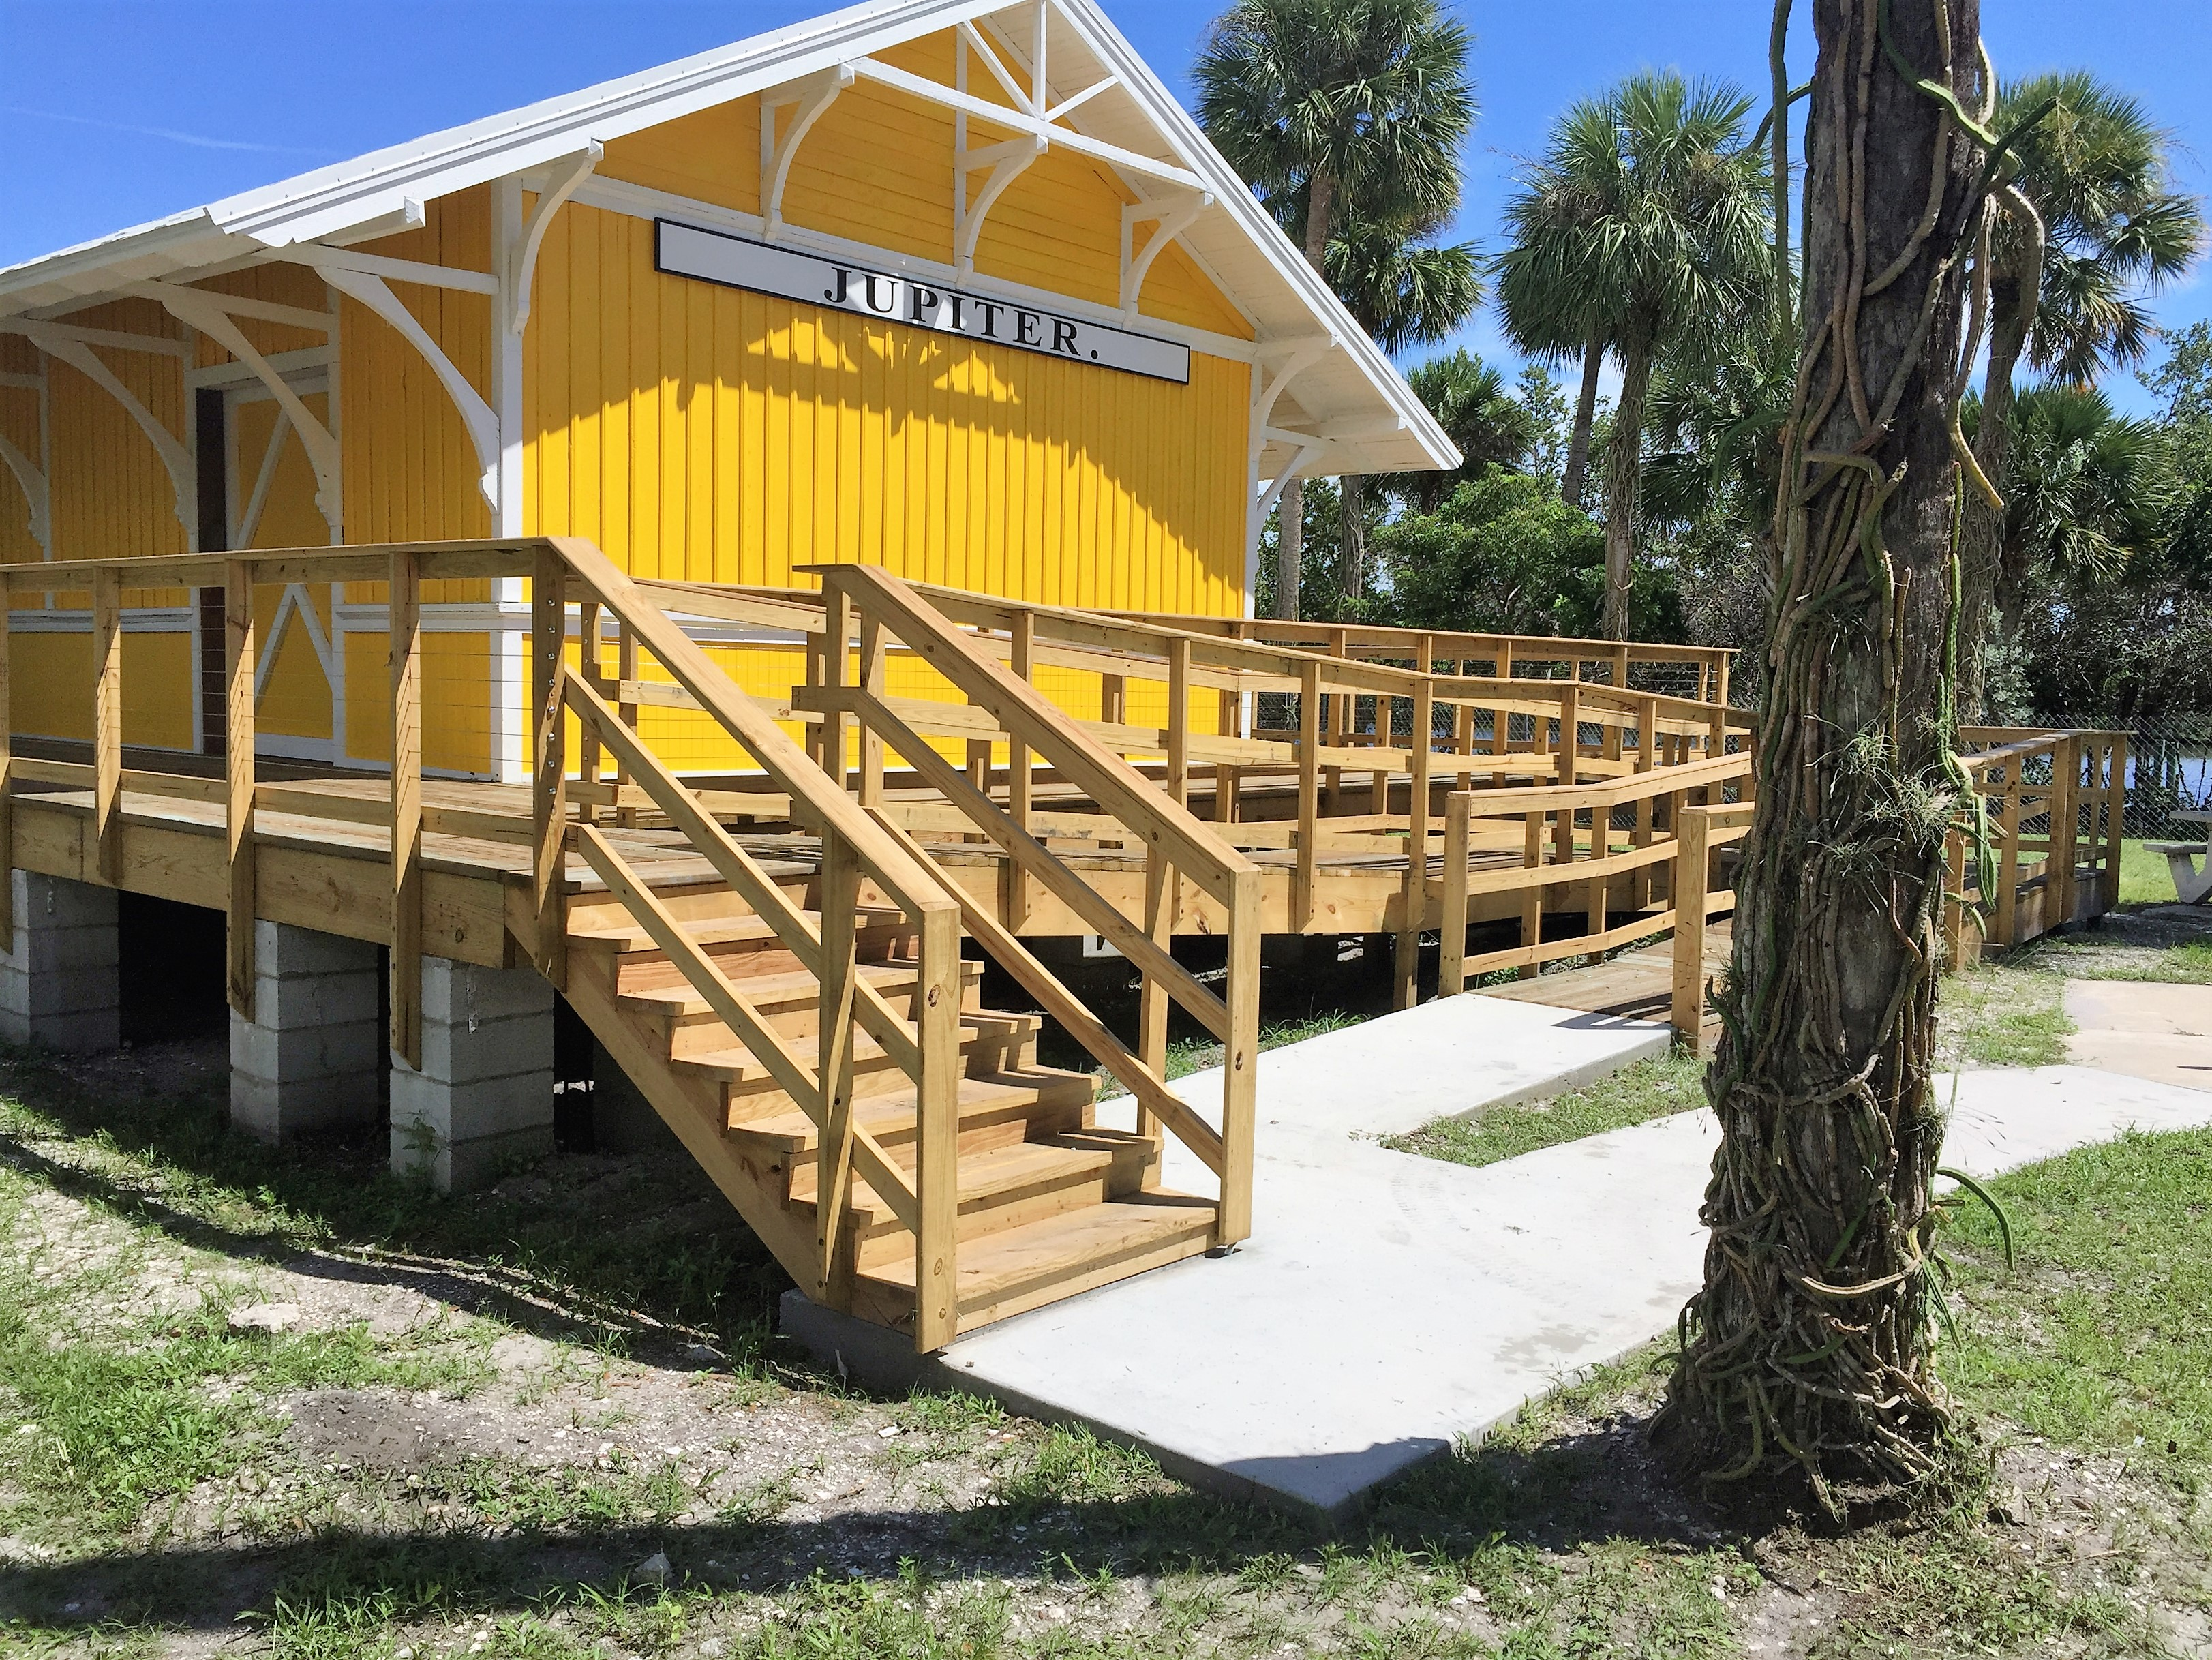 Southern heartwood pine from North Florida, diamond-shaped shingles and hardware similar to what was used a century ago are all part of the restoration of the former Henry Flagler railroad depot at Sawfish Bay